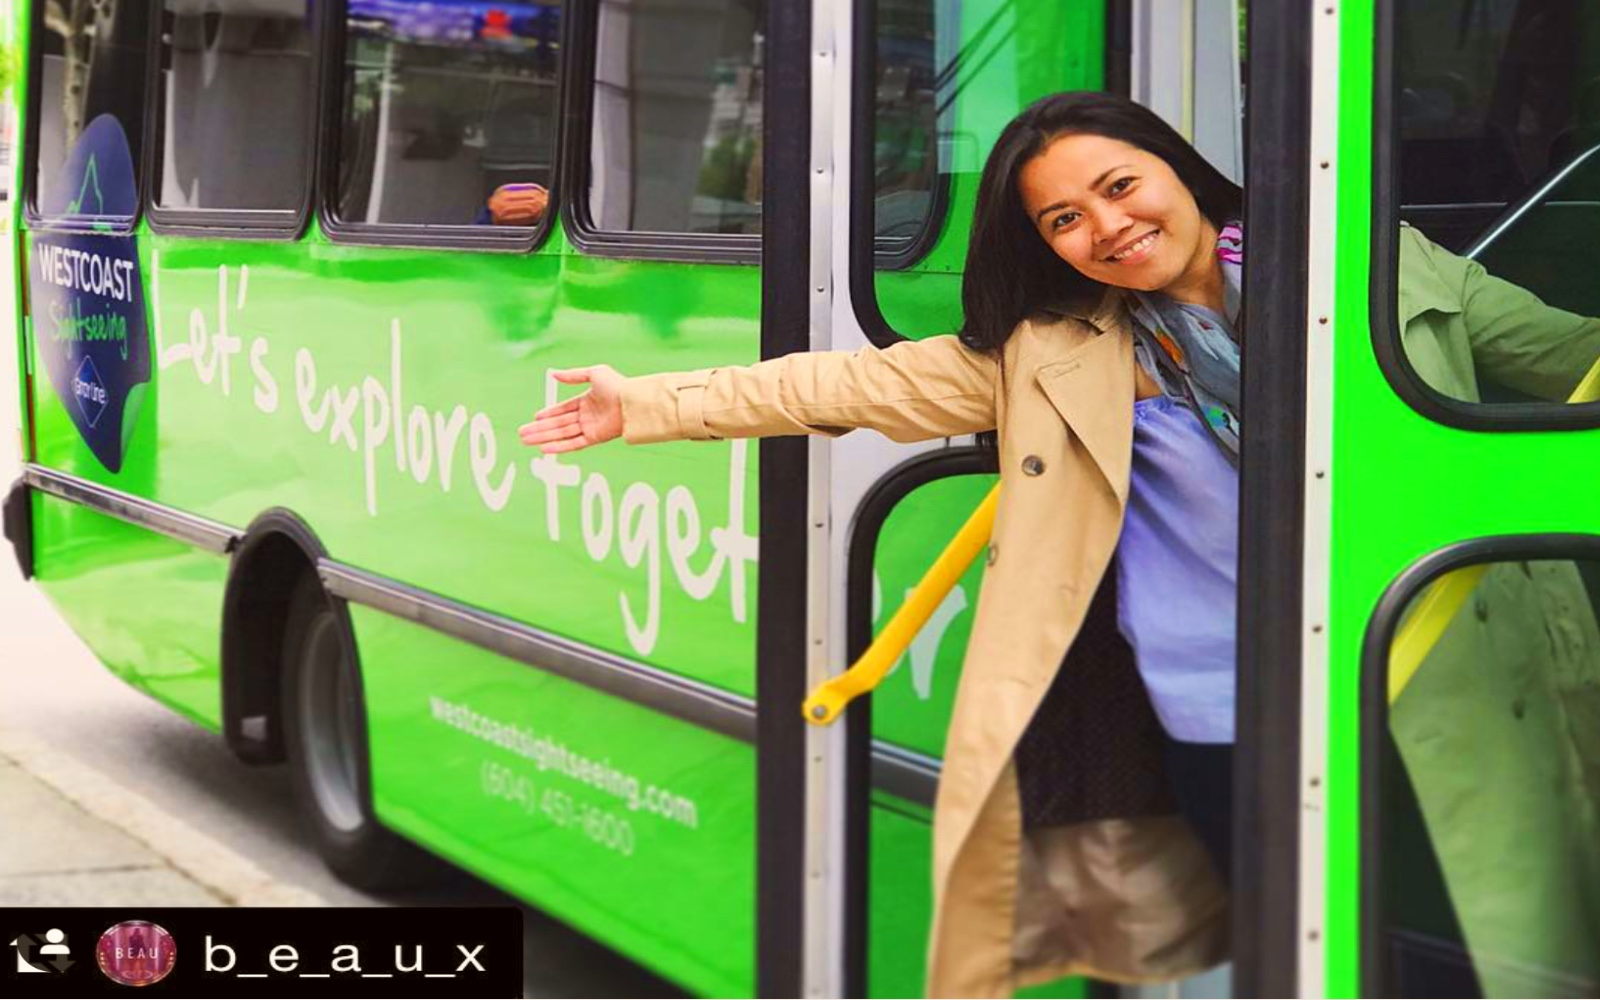 Employee welcomes people aboard a Hop on Hop off bus